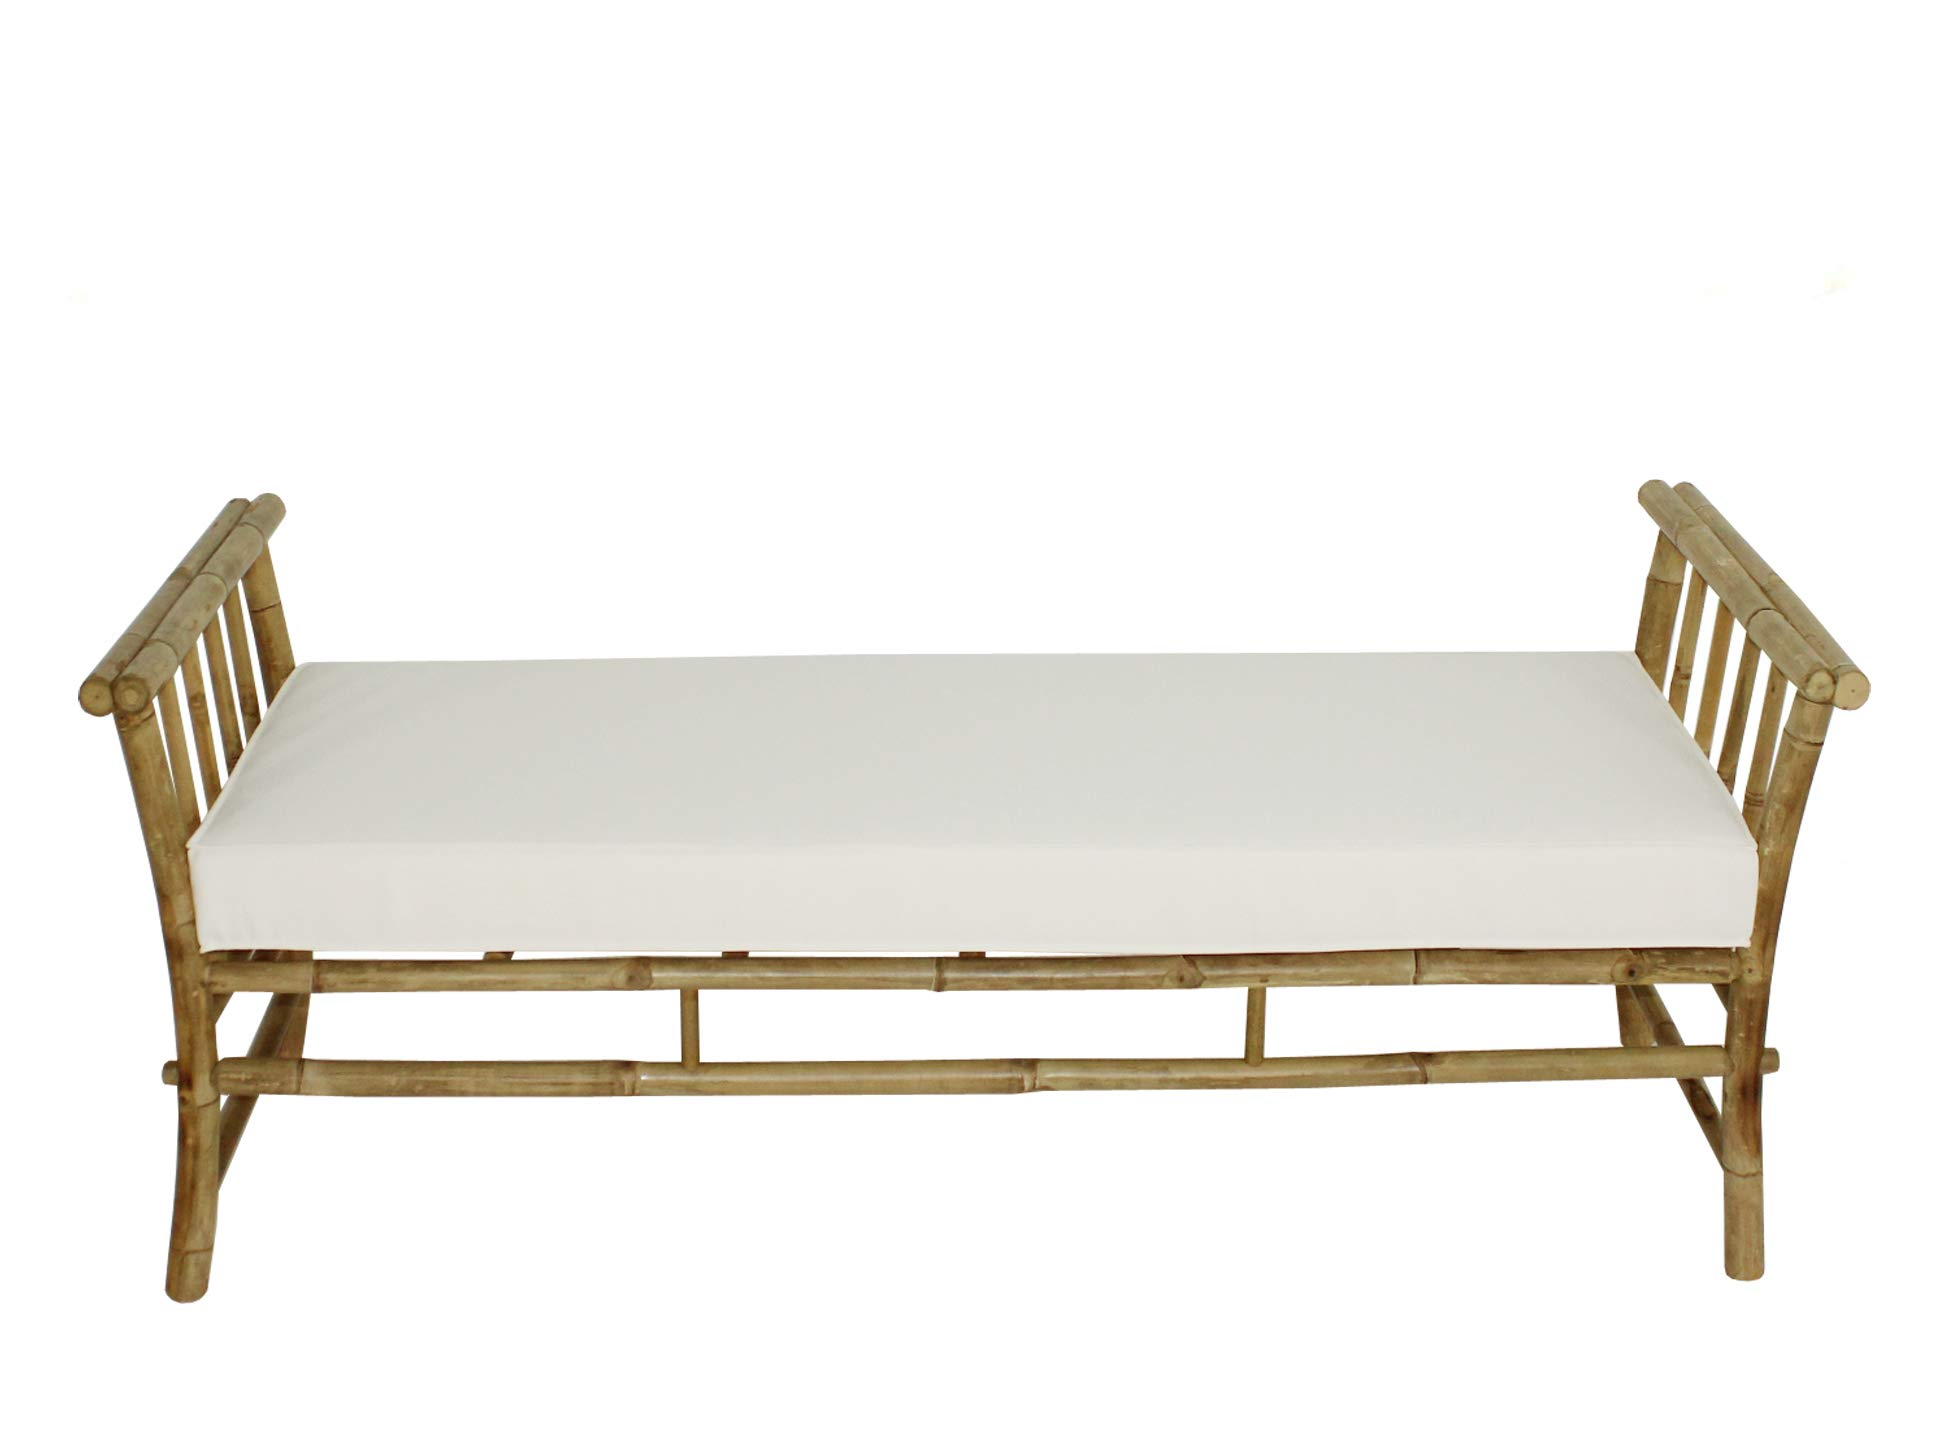 Statra L316N03 Bamboo Bench Sofa Siesta Daybed Lounger, 26'' H x 22'' W x 63'' D, Natural by Statra